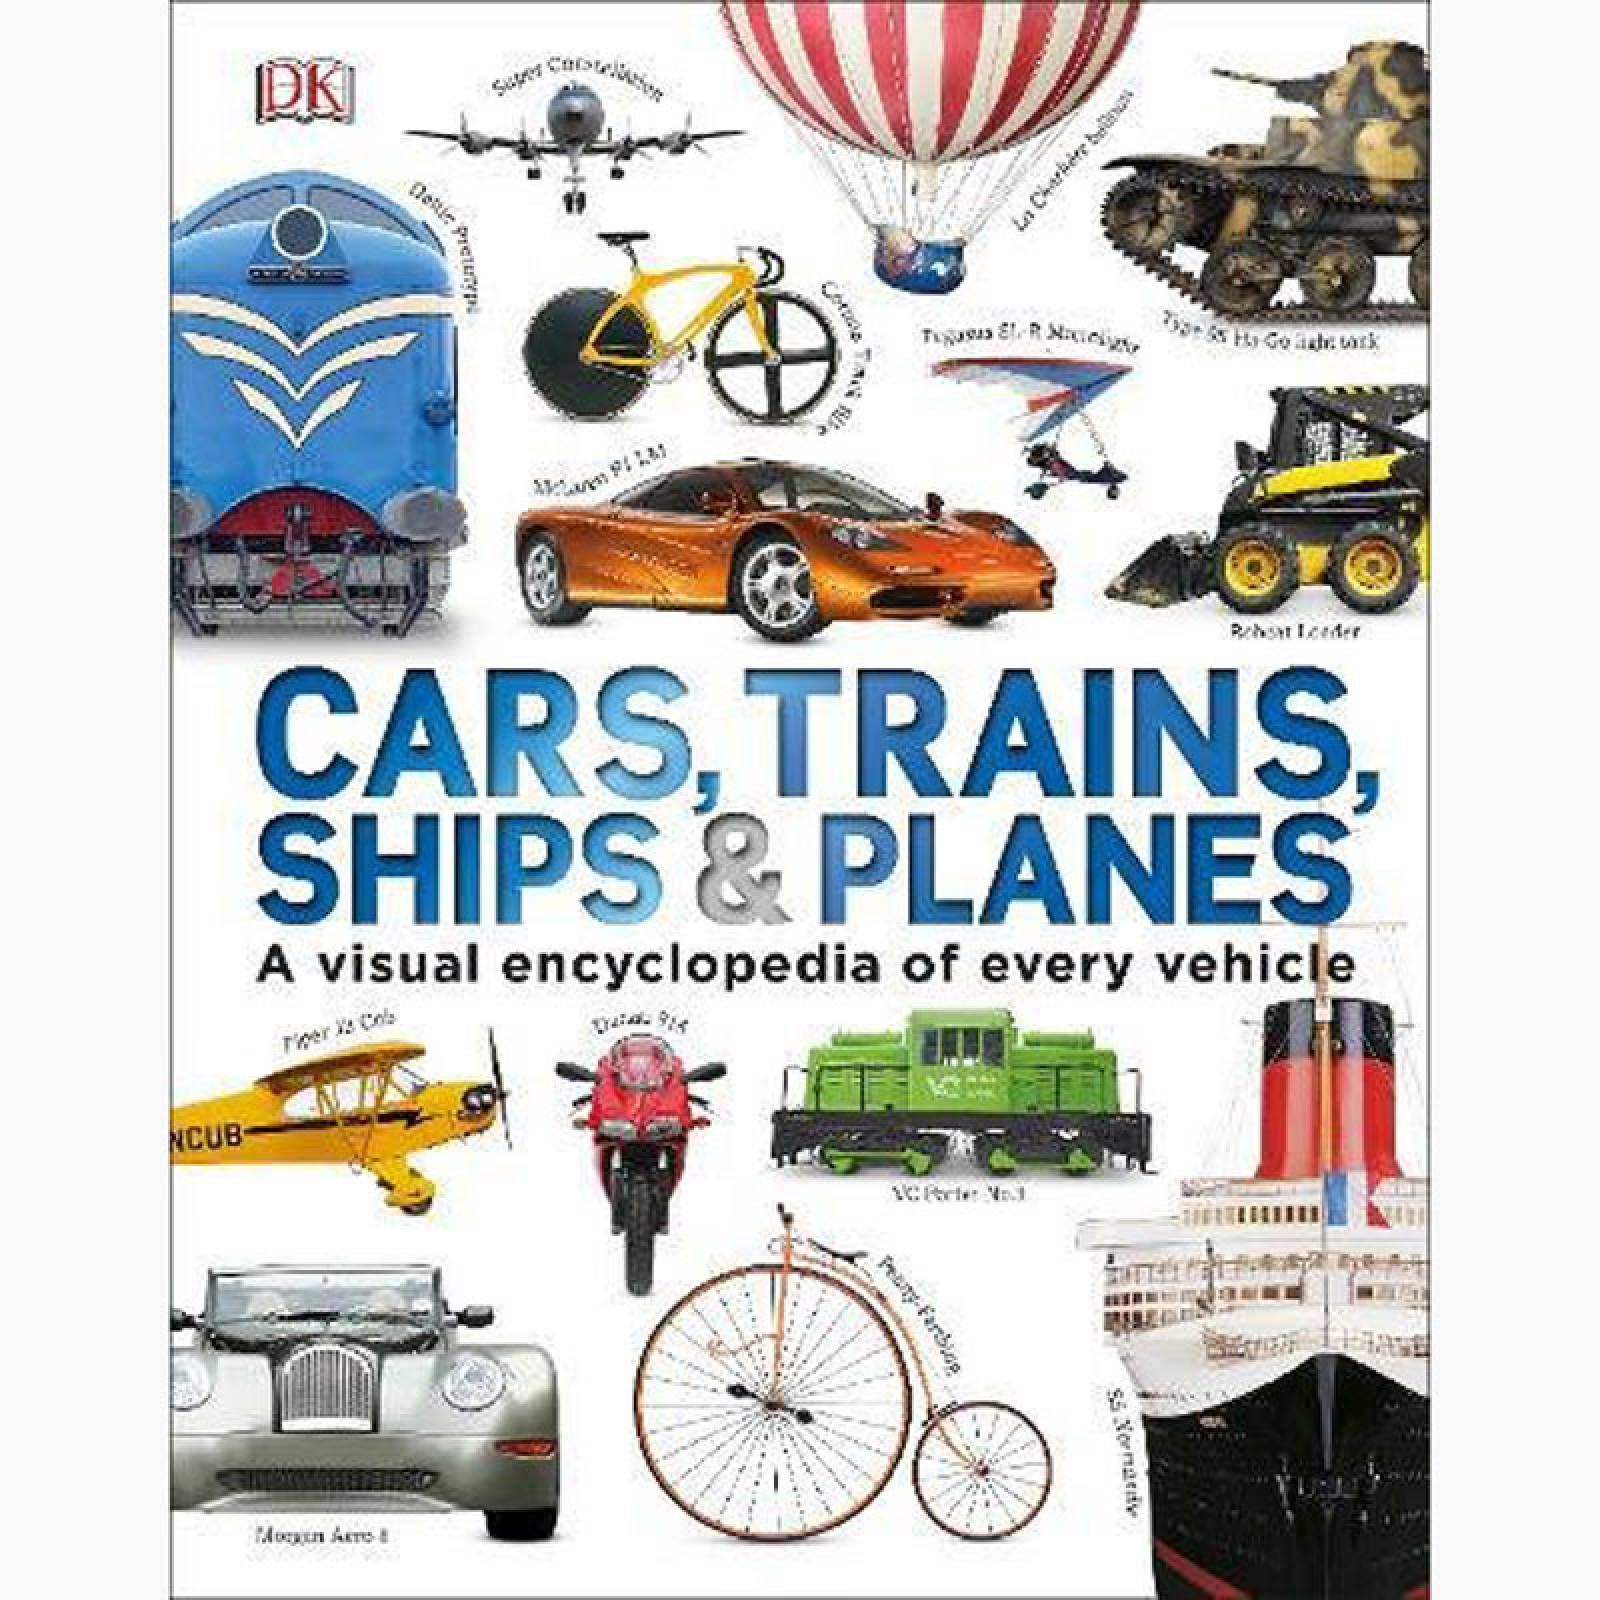 Cars, Trains, Ships And Planes - Hardback Book thumbnails